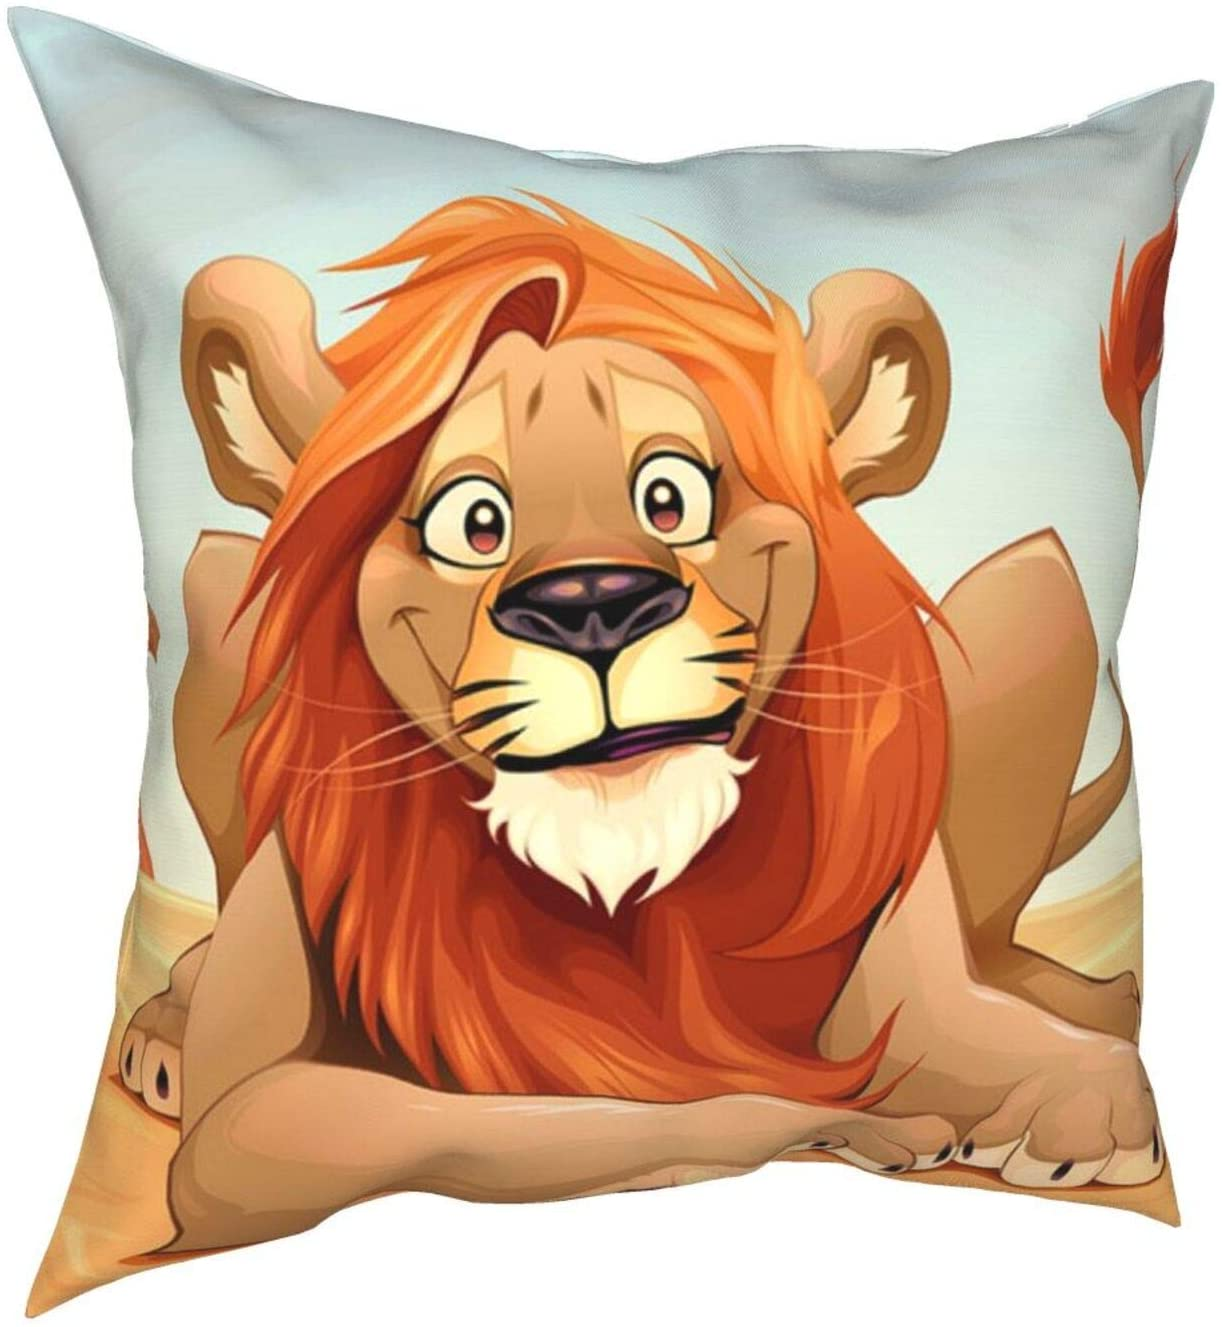 VARUN Happy Lion in Savannah Pillow Cover Decorative Throw Pillow Case Christmas Thanksgiving Farmhouse Flower Pillowcase for Home Decor Sofa Bedroom Car 12 x12